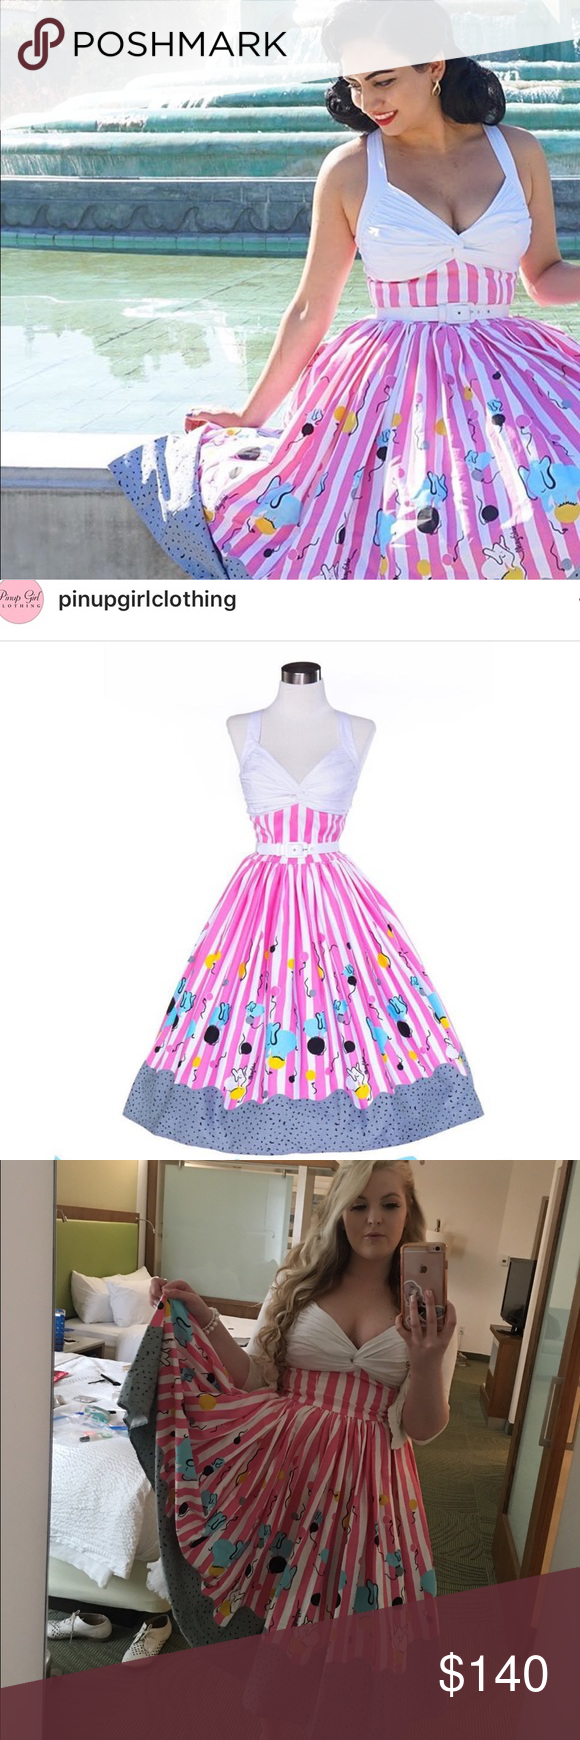 Limited edition pinupgirl clothing circus dress LOVELOVELOVELOVE THIS DRESS! wore to a wedding at an aquarium.  Size medium.  Will post more measurements if needed :) worn once! Pinupgirlclothing limited edition! No longer sold! Rare 1940s style vintage style remake pin up rockabilly pinupgirlclothing Dresses